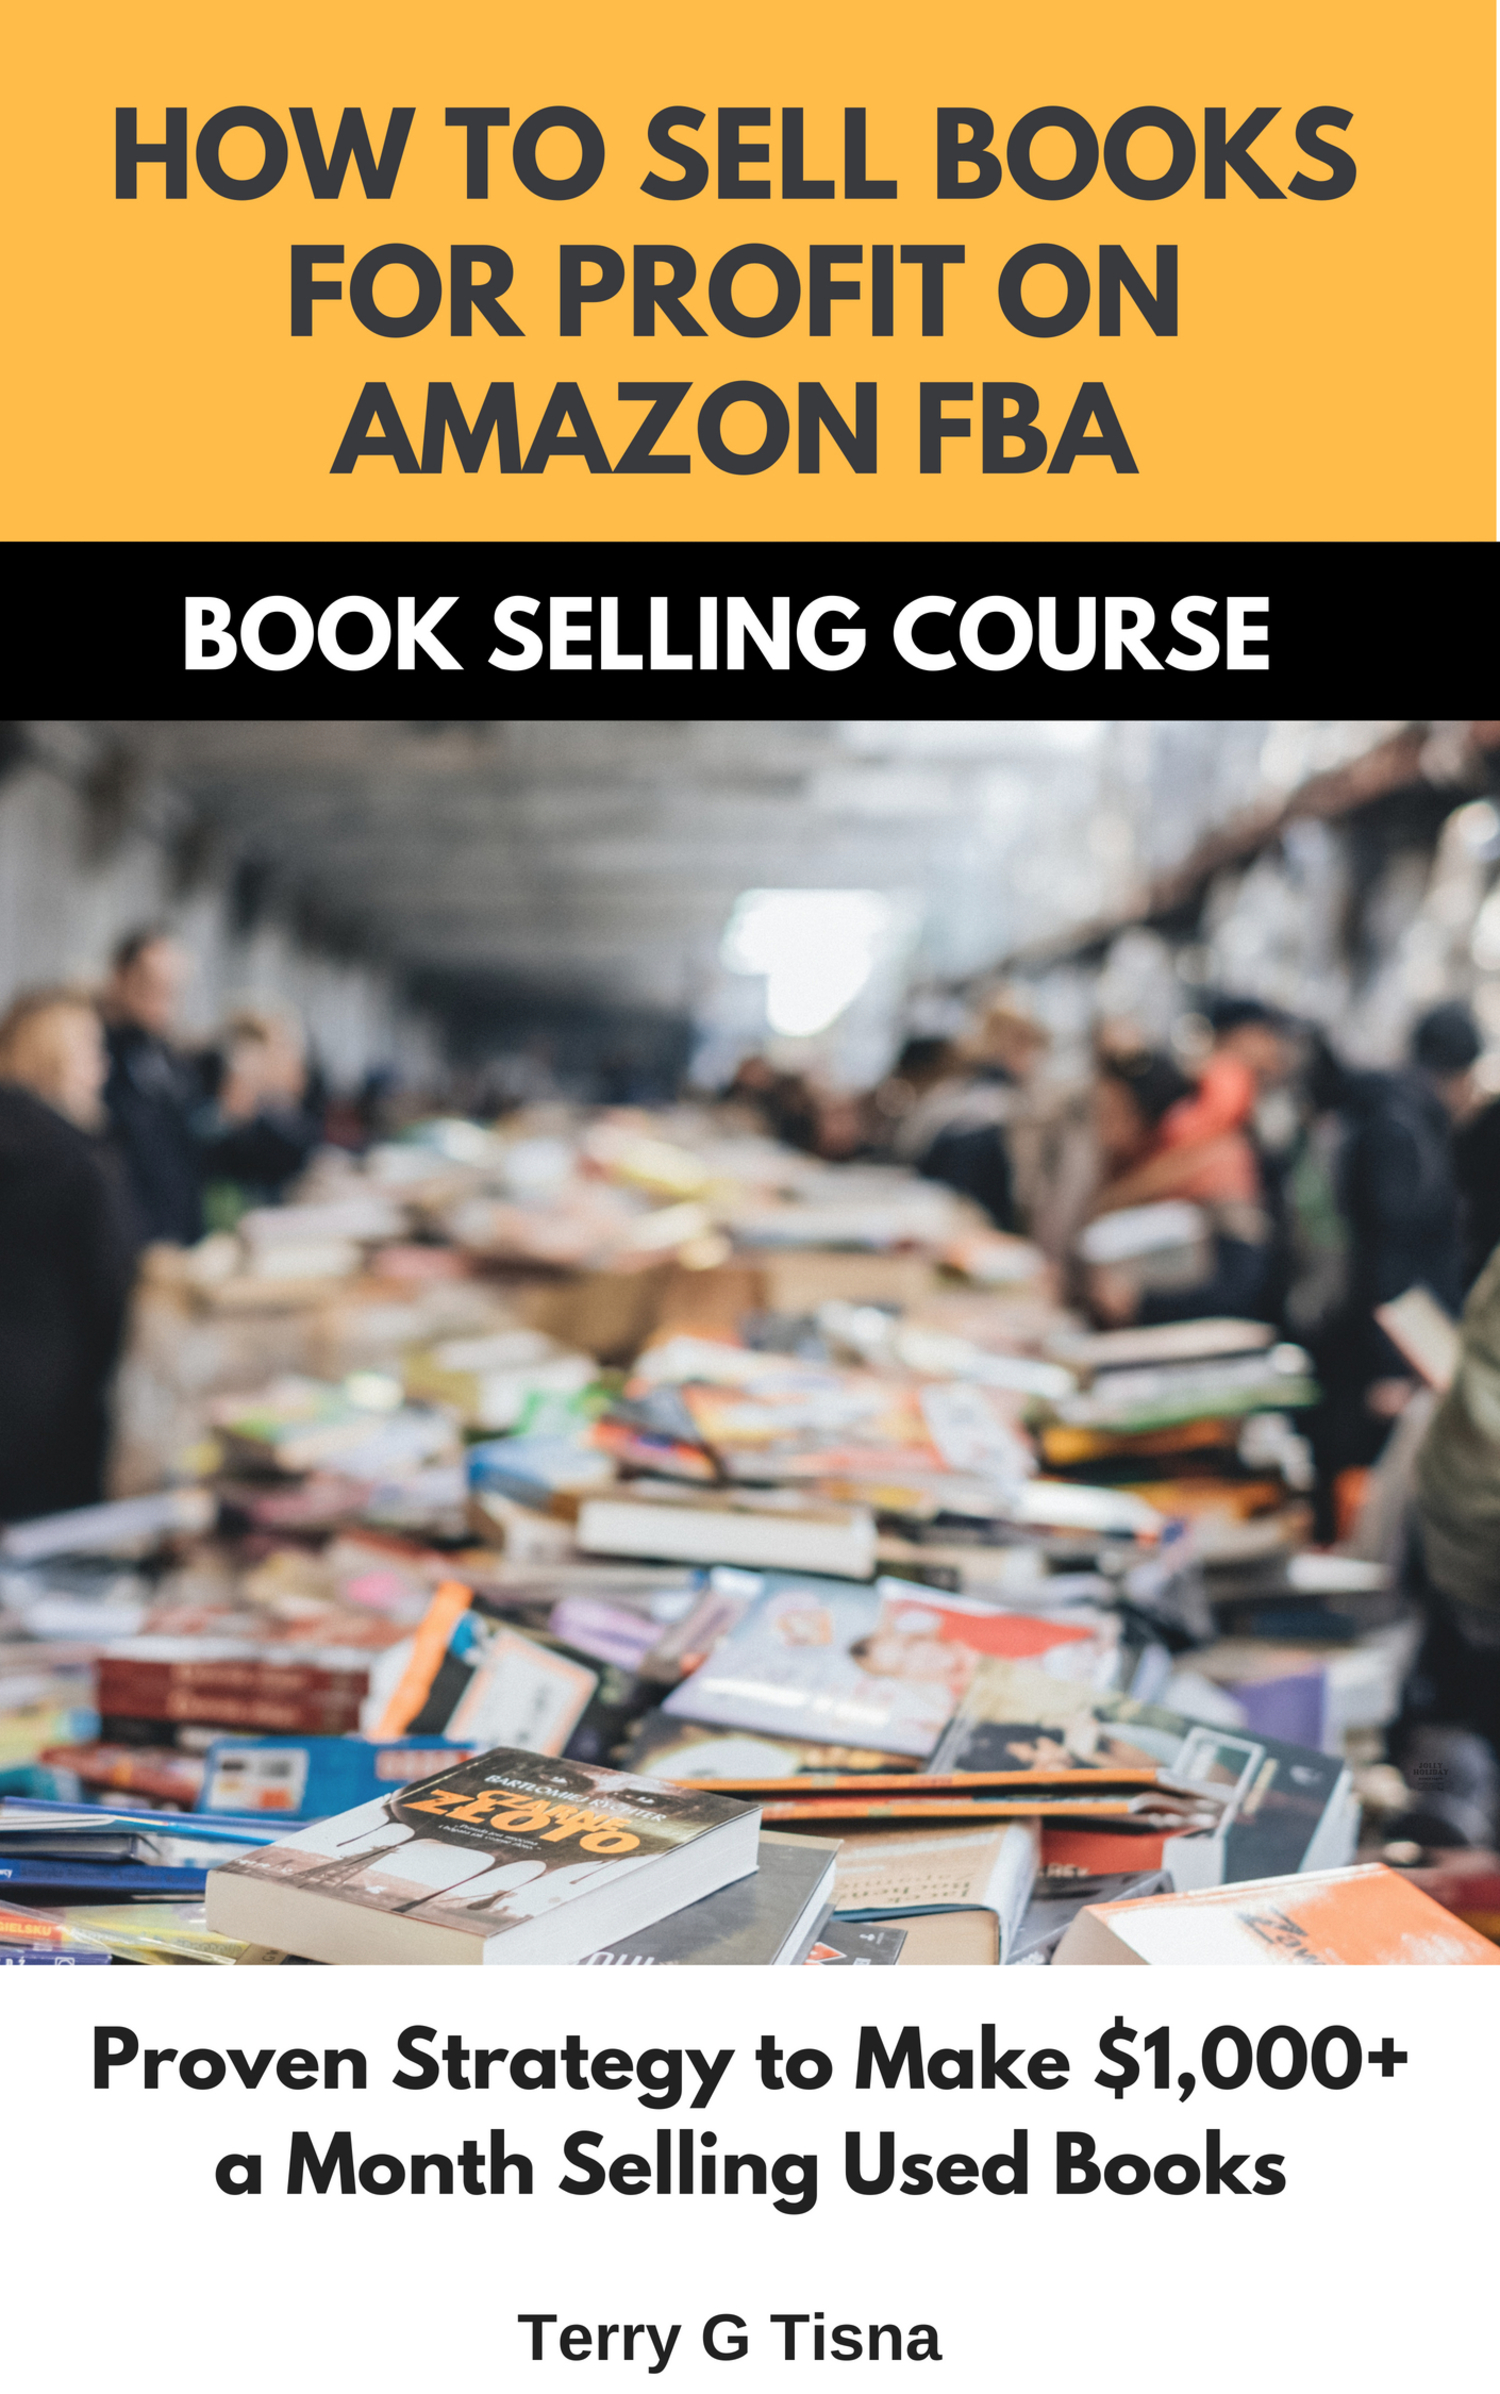 How to Sell Books recommend